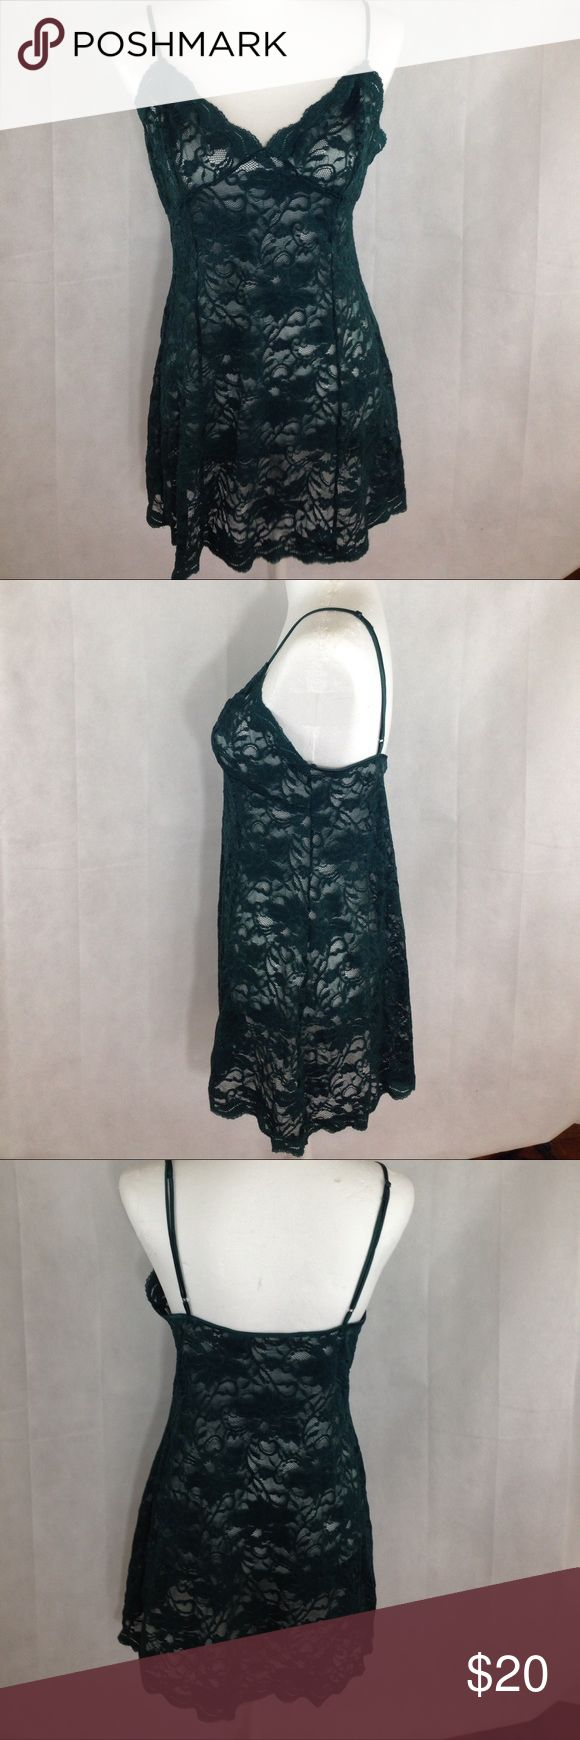 Victoria's Secret hunter green lingerie size M Victoria's Secret hunter green teddy size medium. Good condition no rips stains or holes. Smoke free home. Bust 30 length 27 Victoria's Secret Intimates & Sleepwear Chemises & Slips